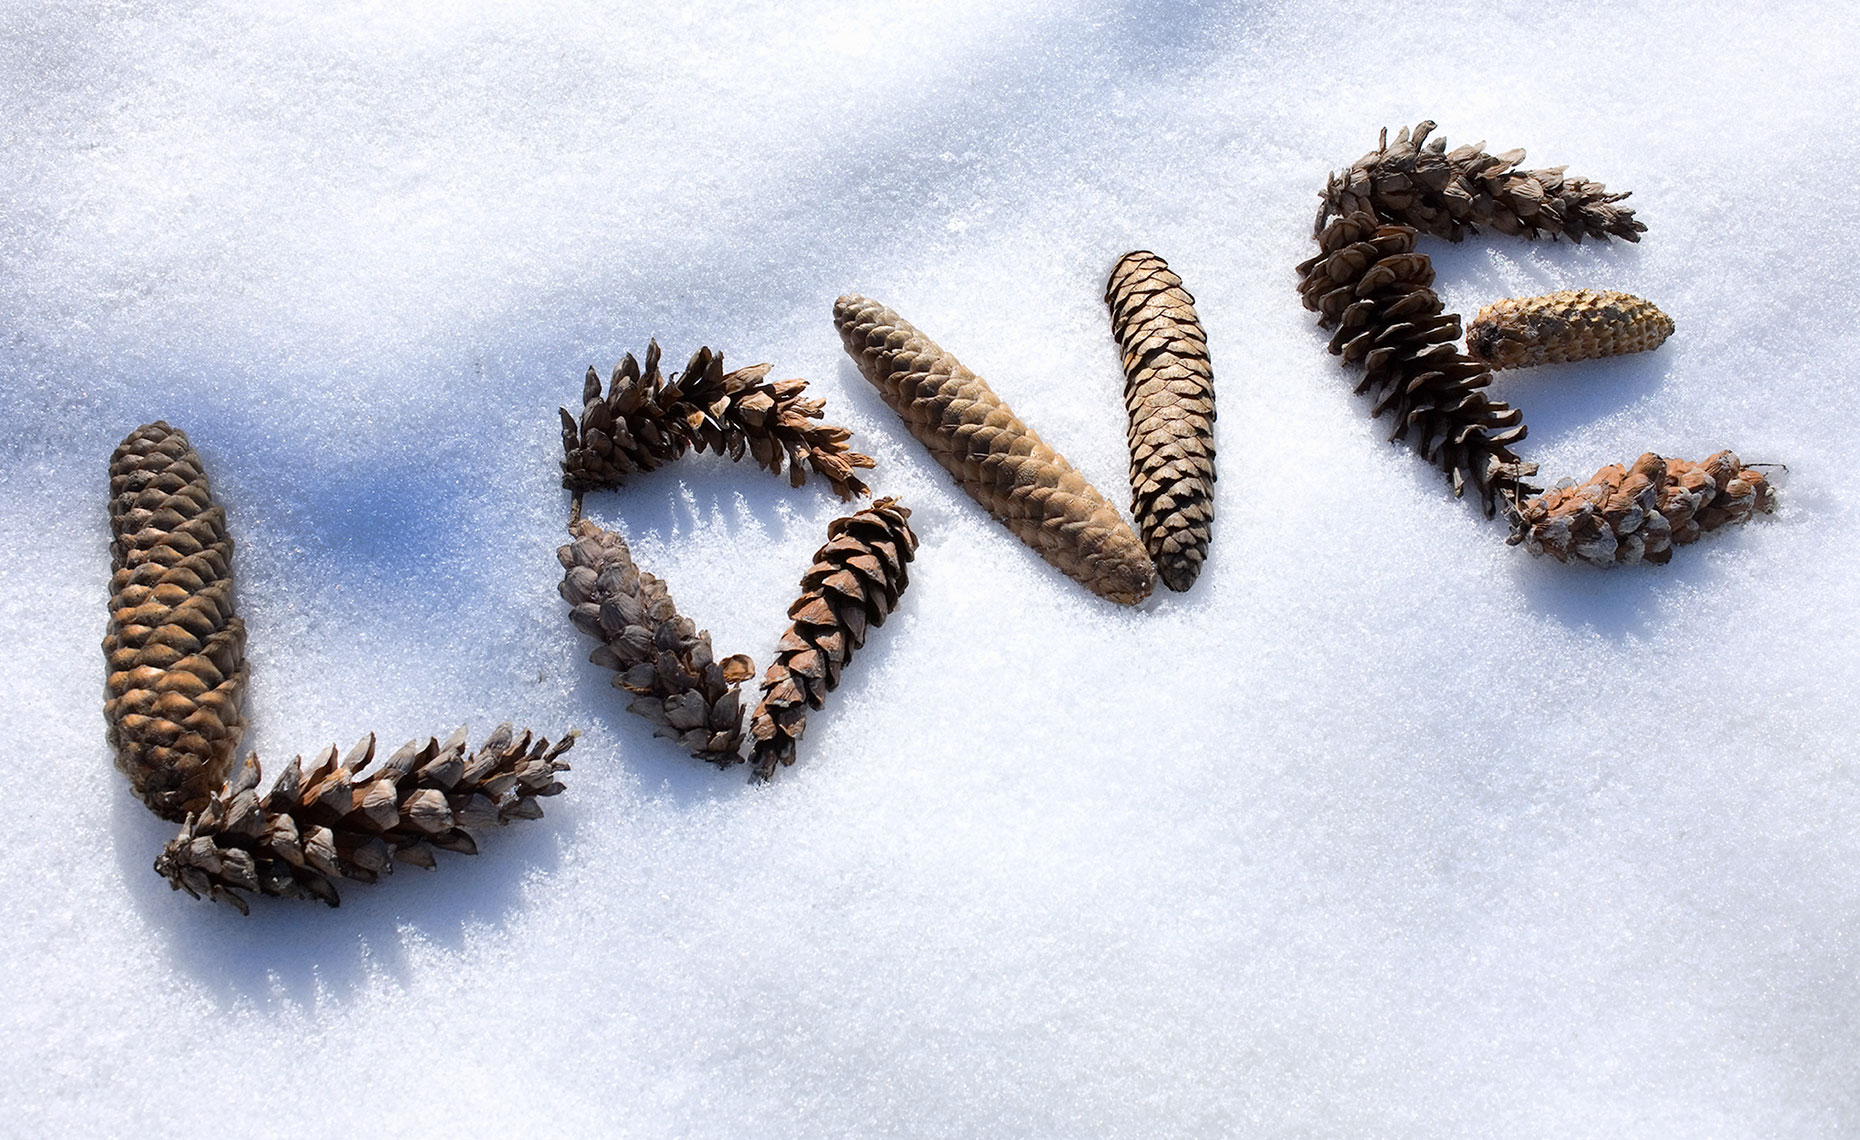 Pinecones love in snow